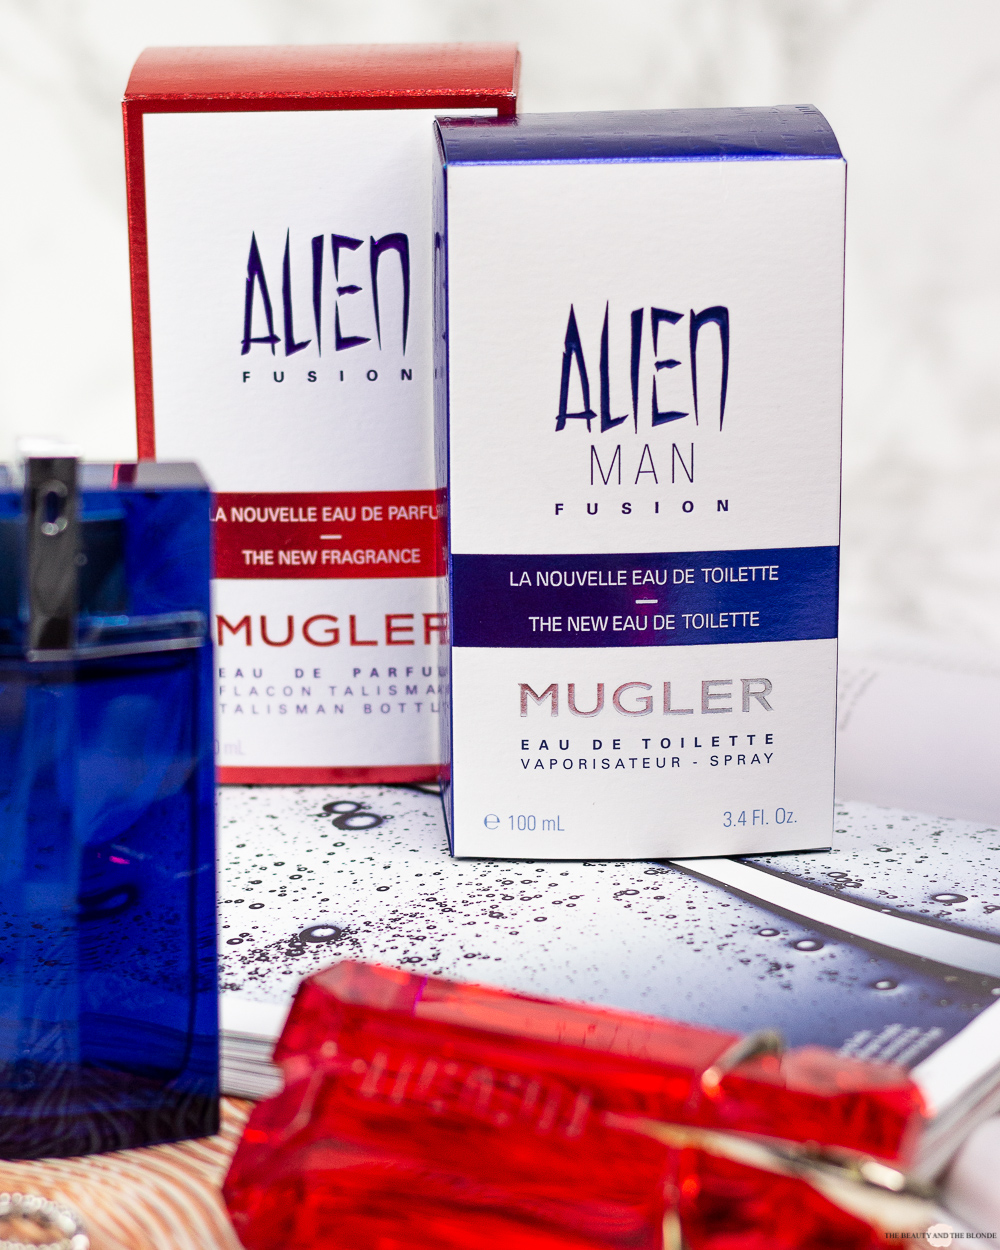 Mugler Alien Fusion Man Review Duft Parfum